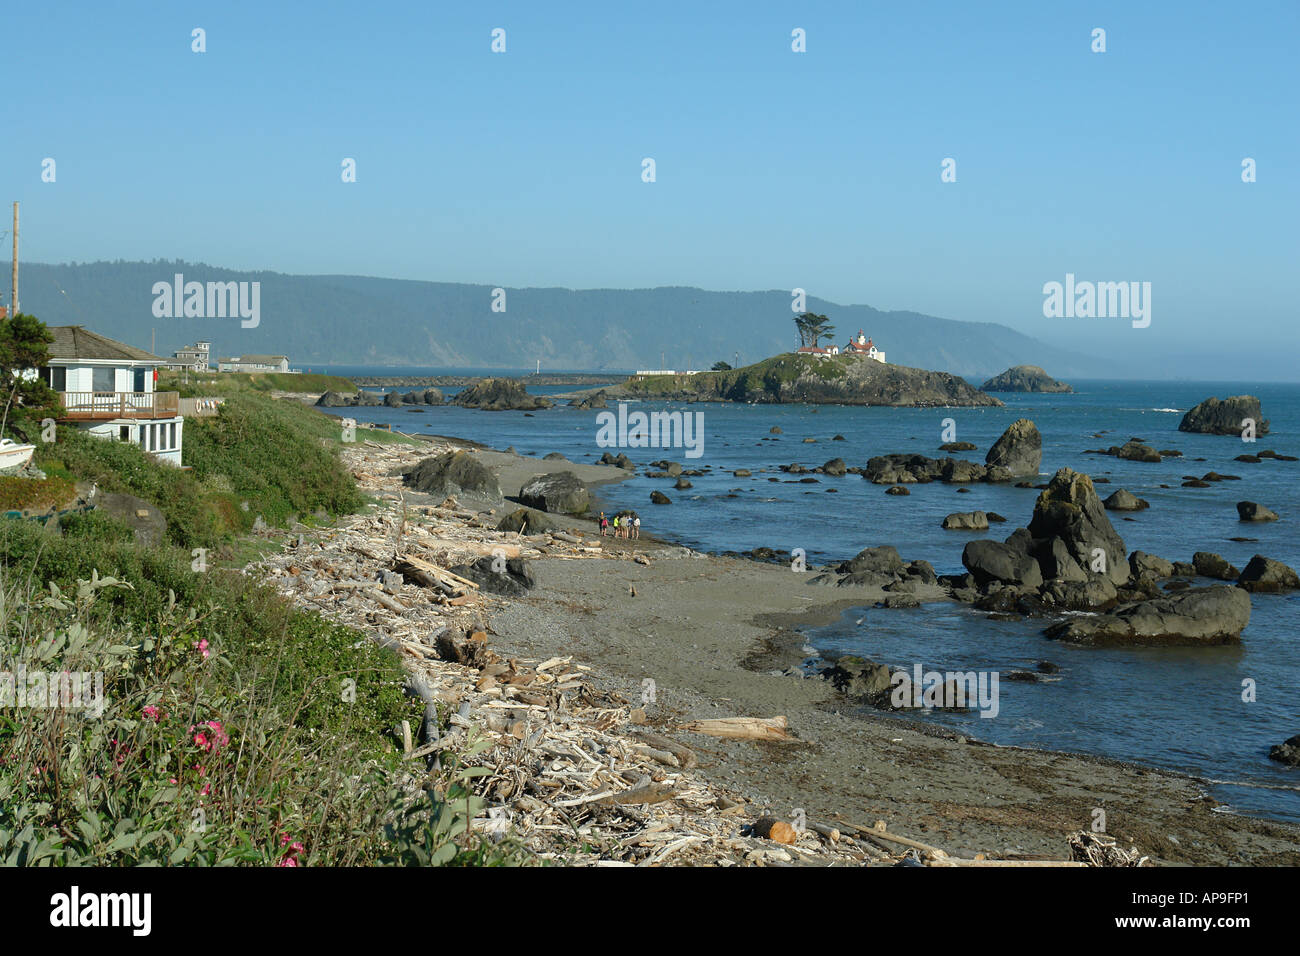 AJD51246, Crescent City, CA, California, Pacific Ocean, Battery Point Lighthouse ca 1856, Battery Point Island Stock Photo